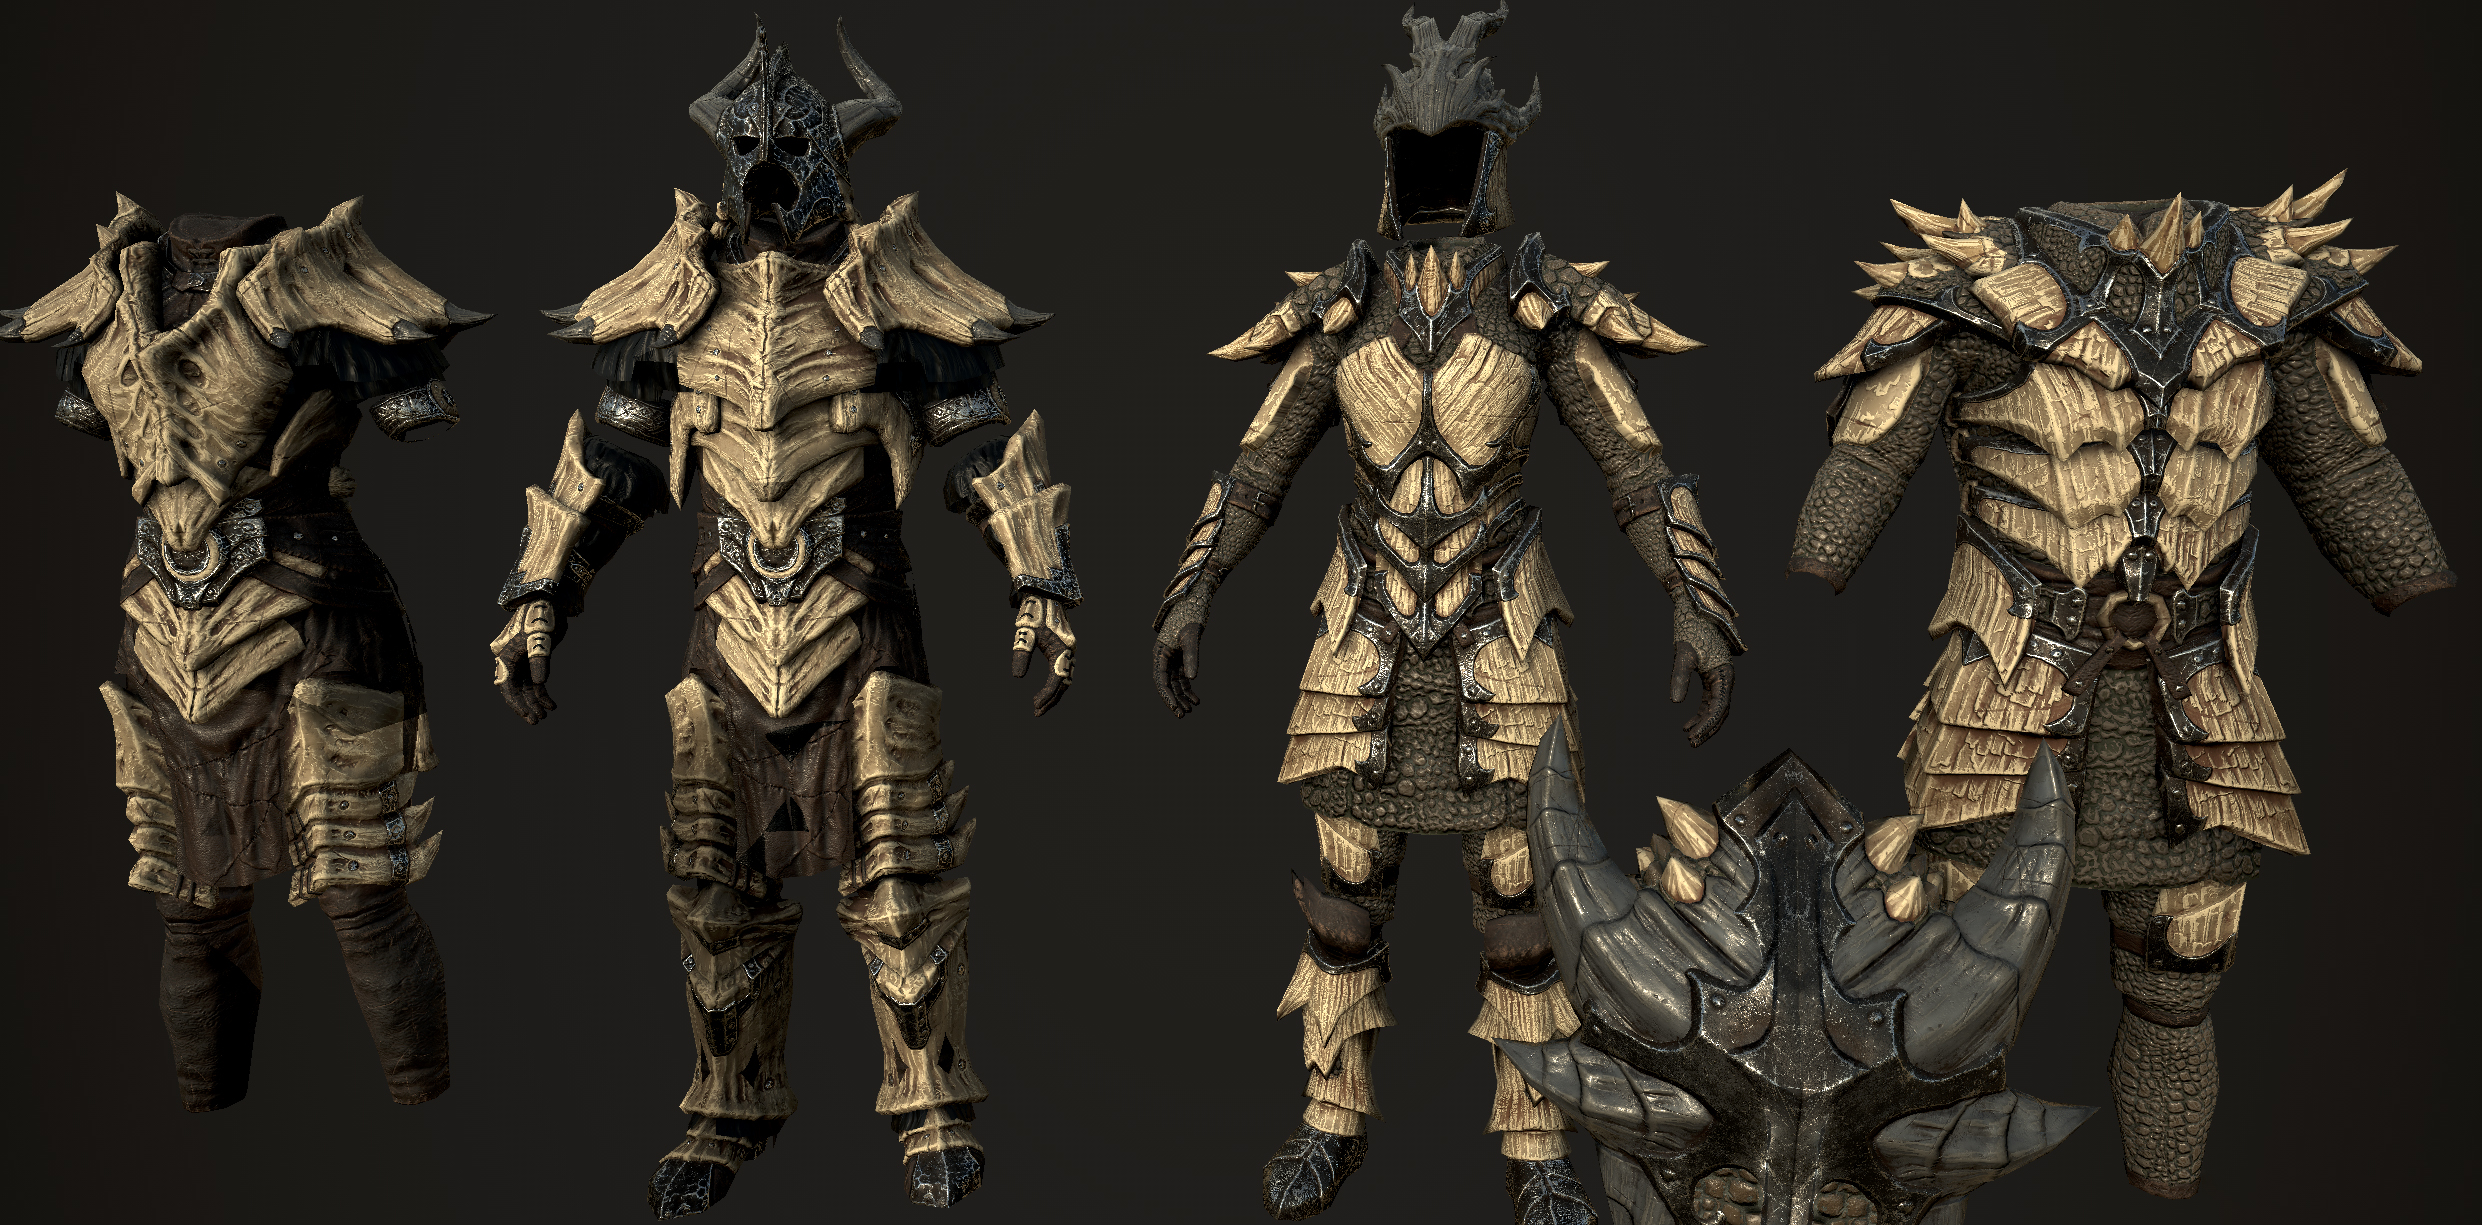 Frankly Hd Dragonbone And Dragonscale At Skyrim Special Edition Nexus Mods And Community Dragon armor or dragon set is a top tier hardmode melee armor / vanity set. frankly hd dragonbone and dragonscale